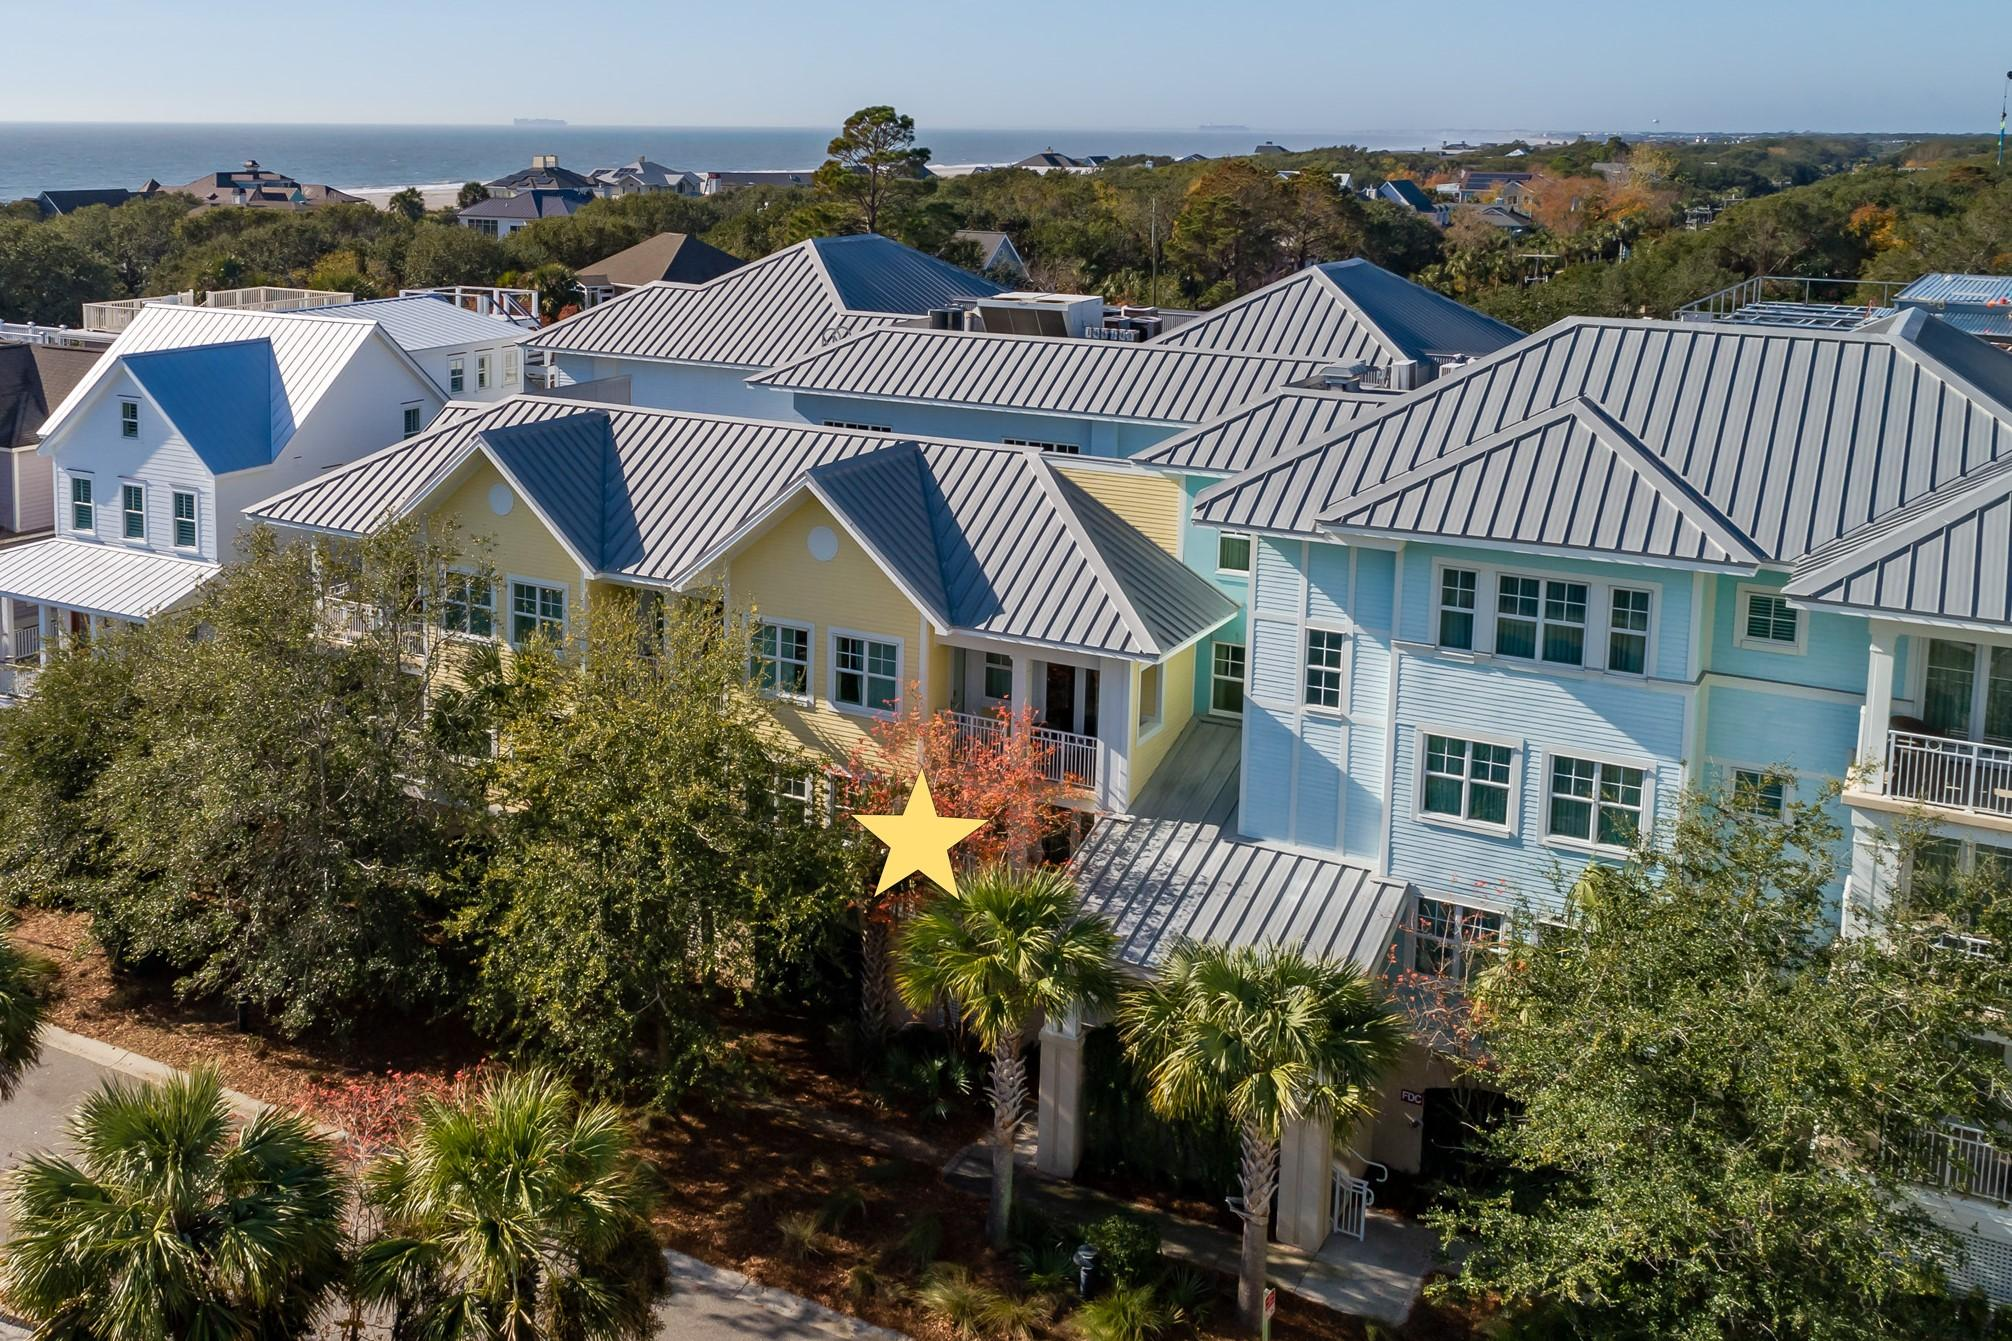 Wild Dunes Homes For Sale - 105 Village At Wild Dunes, Isle of Palms, SC - 5